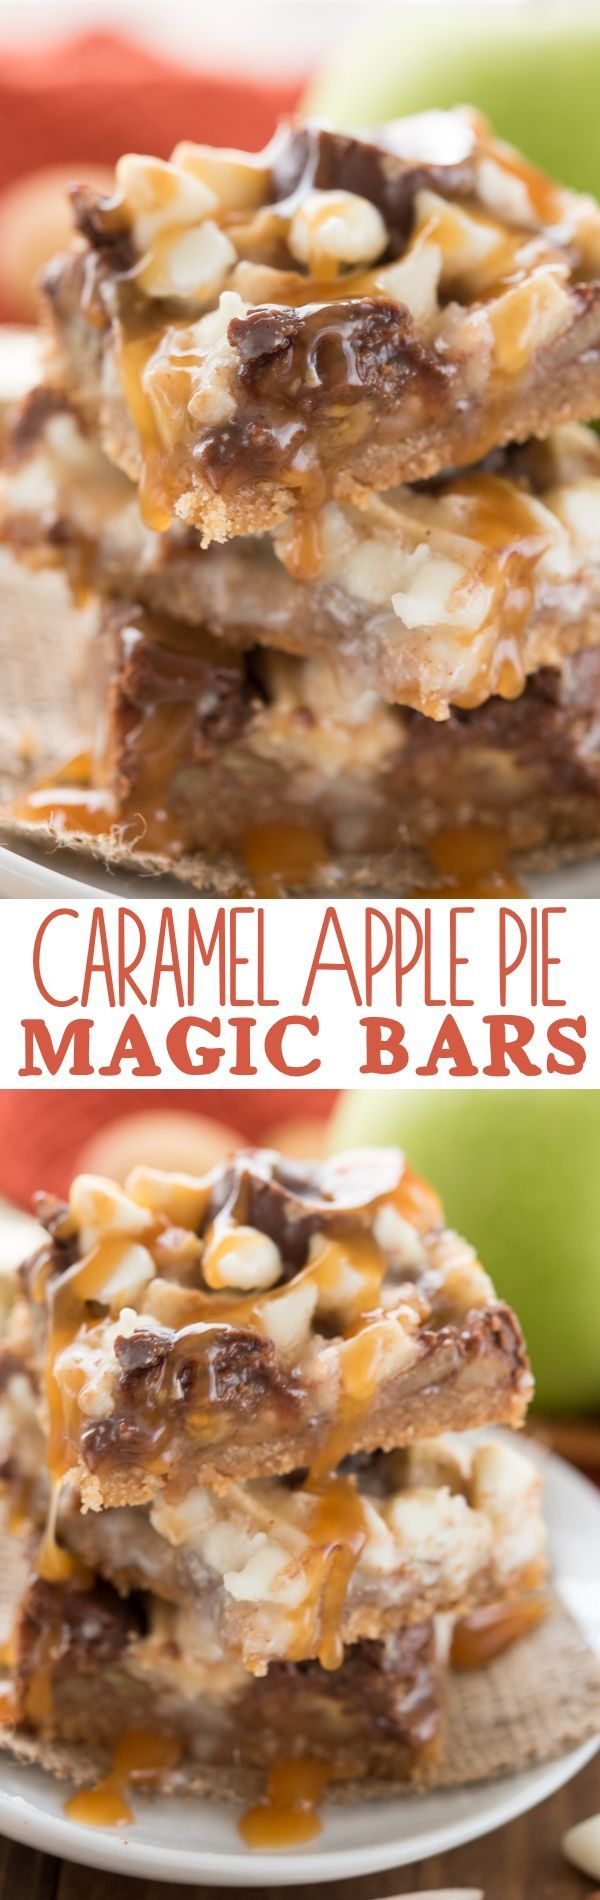 Caramel Apple Pie Magic Bars: An easy recipe for fall full of caramel, apple pie flavor, and a Nilla Wafer crust!